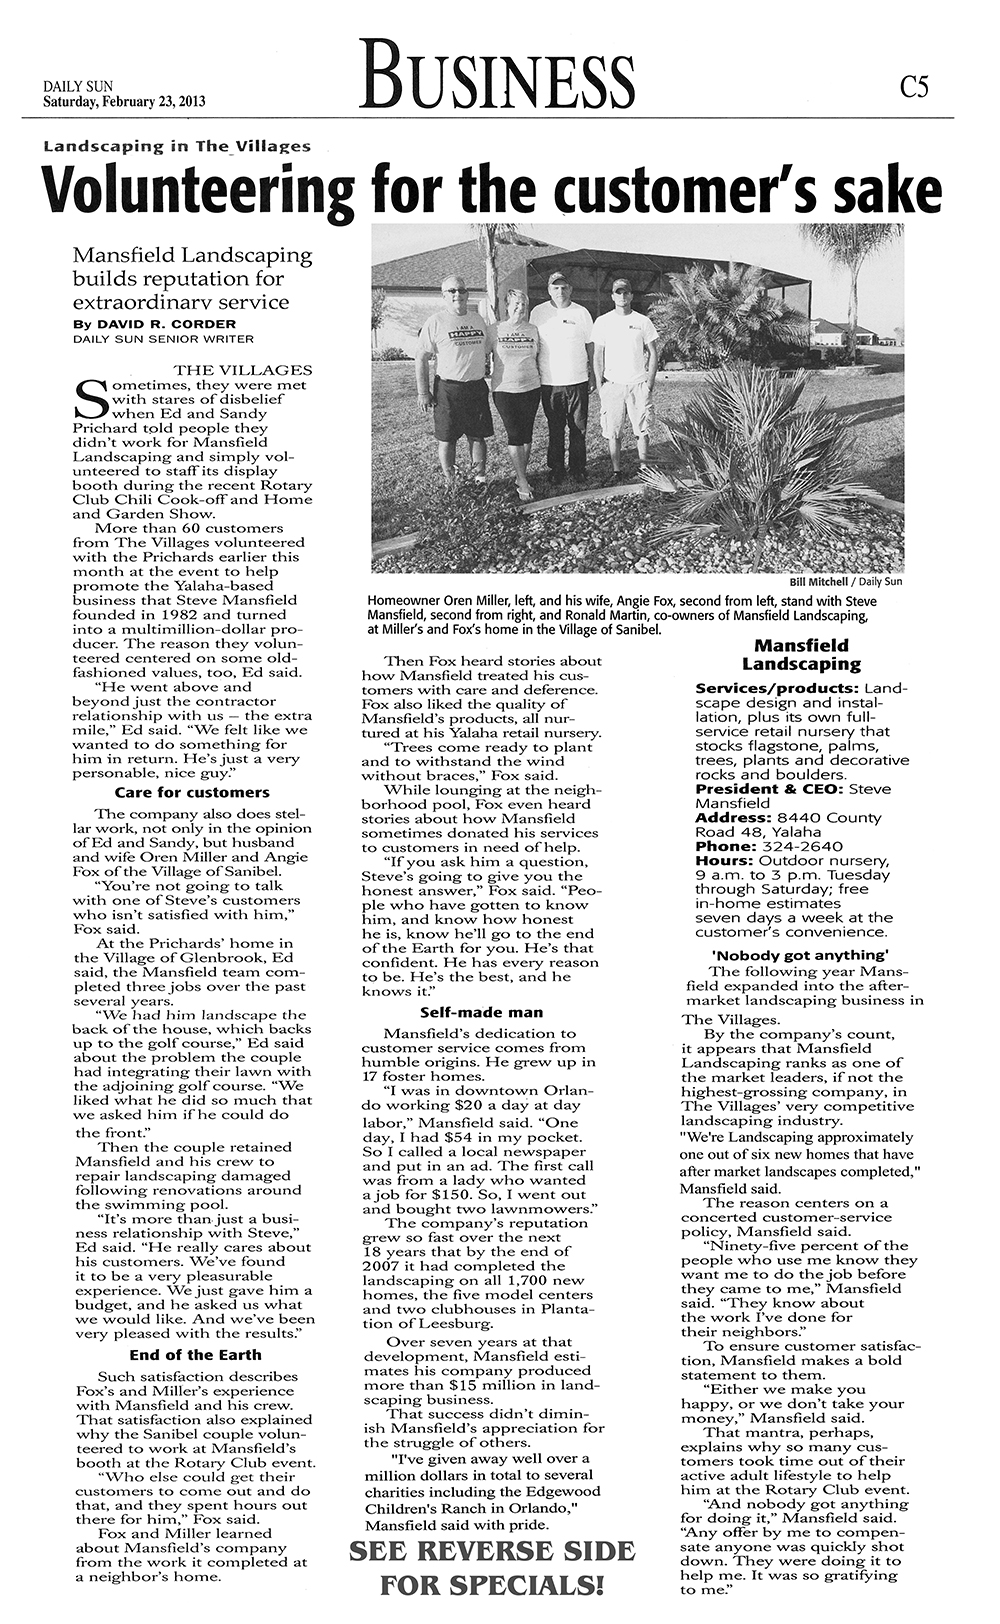 Mansfield Landscaping - The Villages Daily Sun Article - February 23, 2013